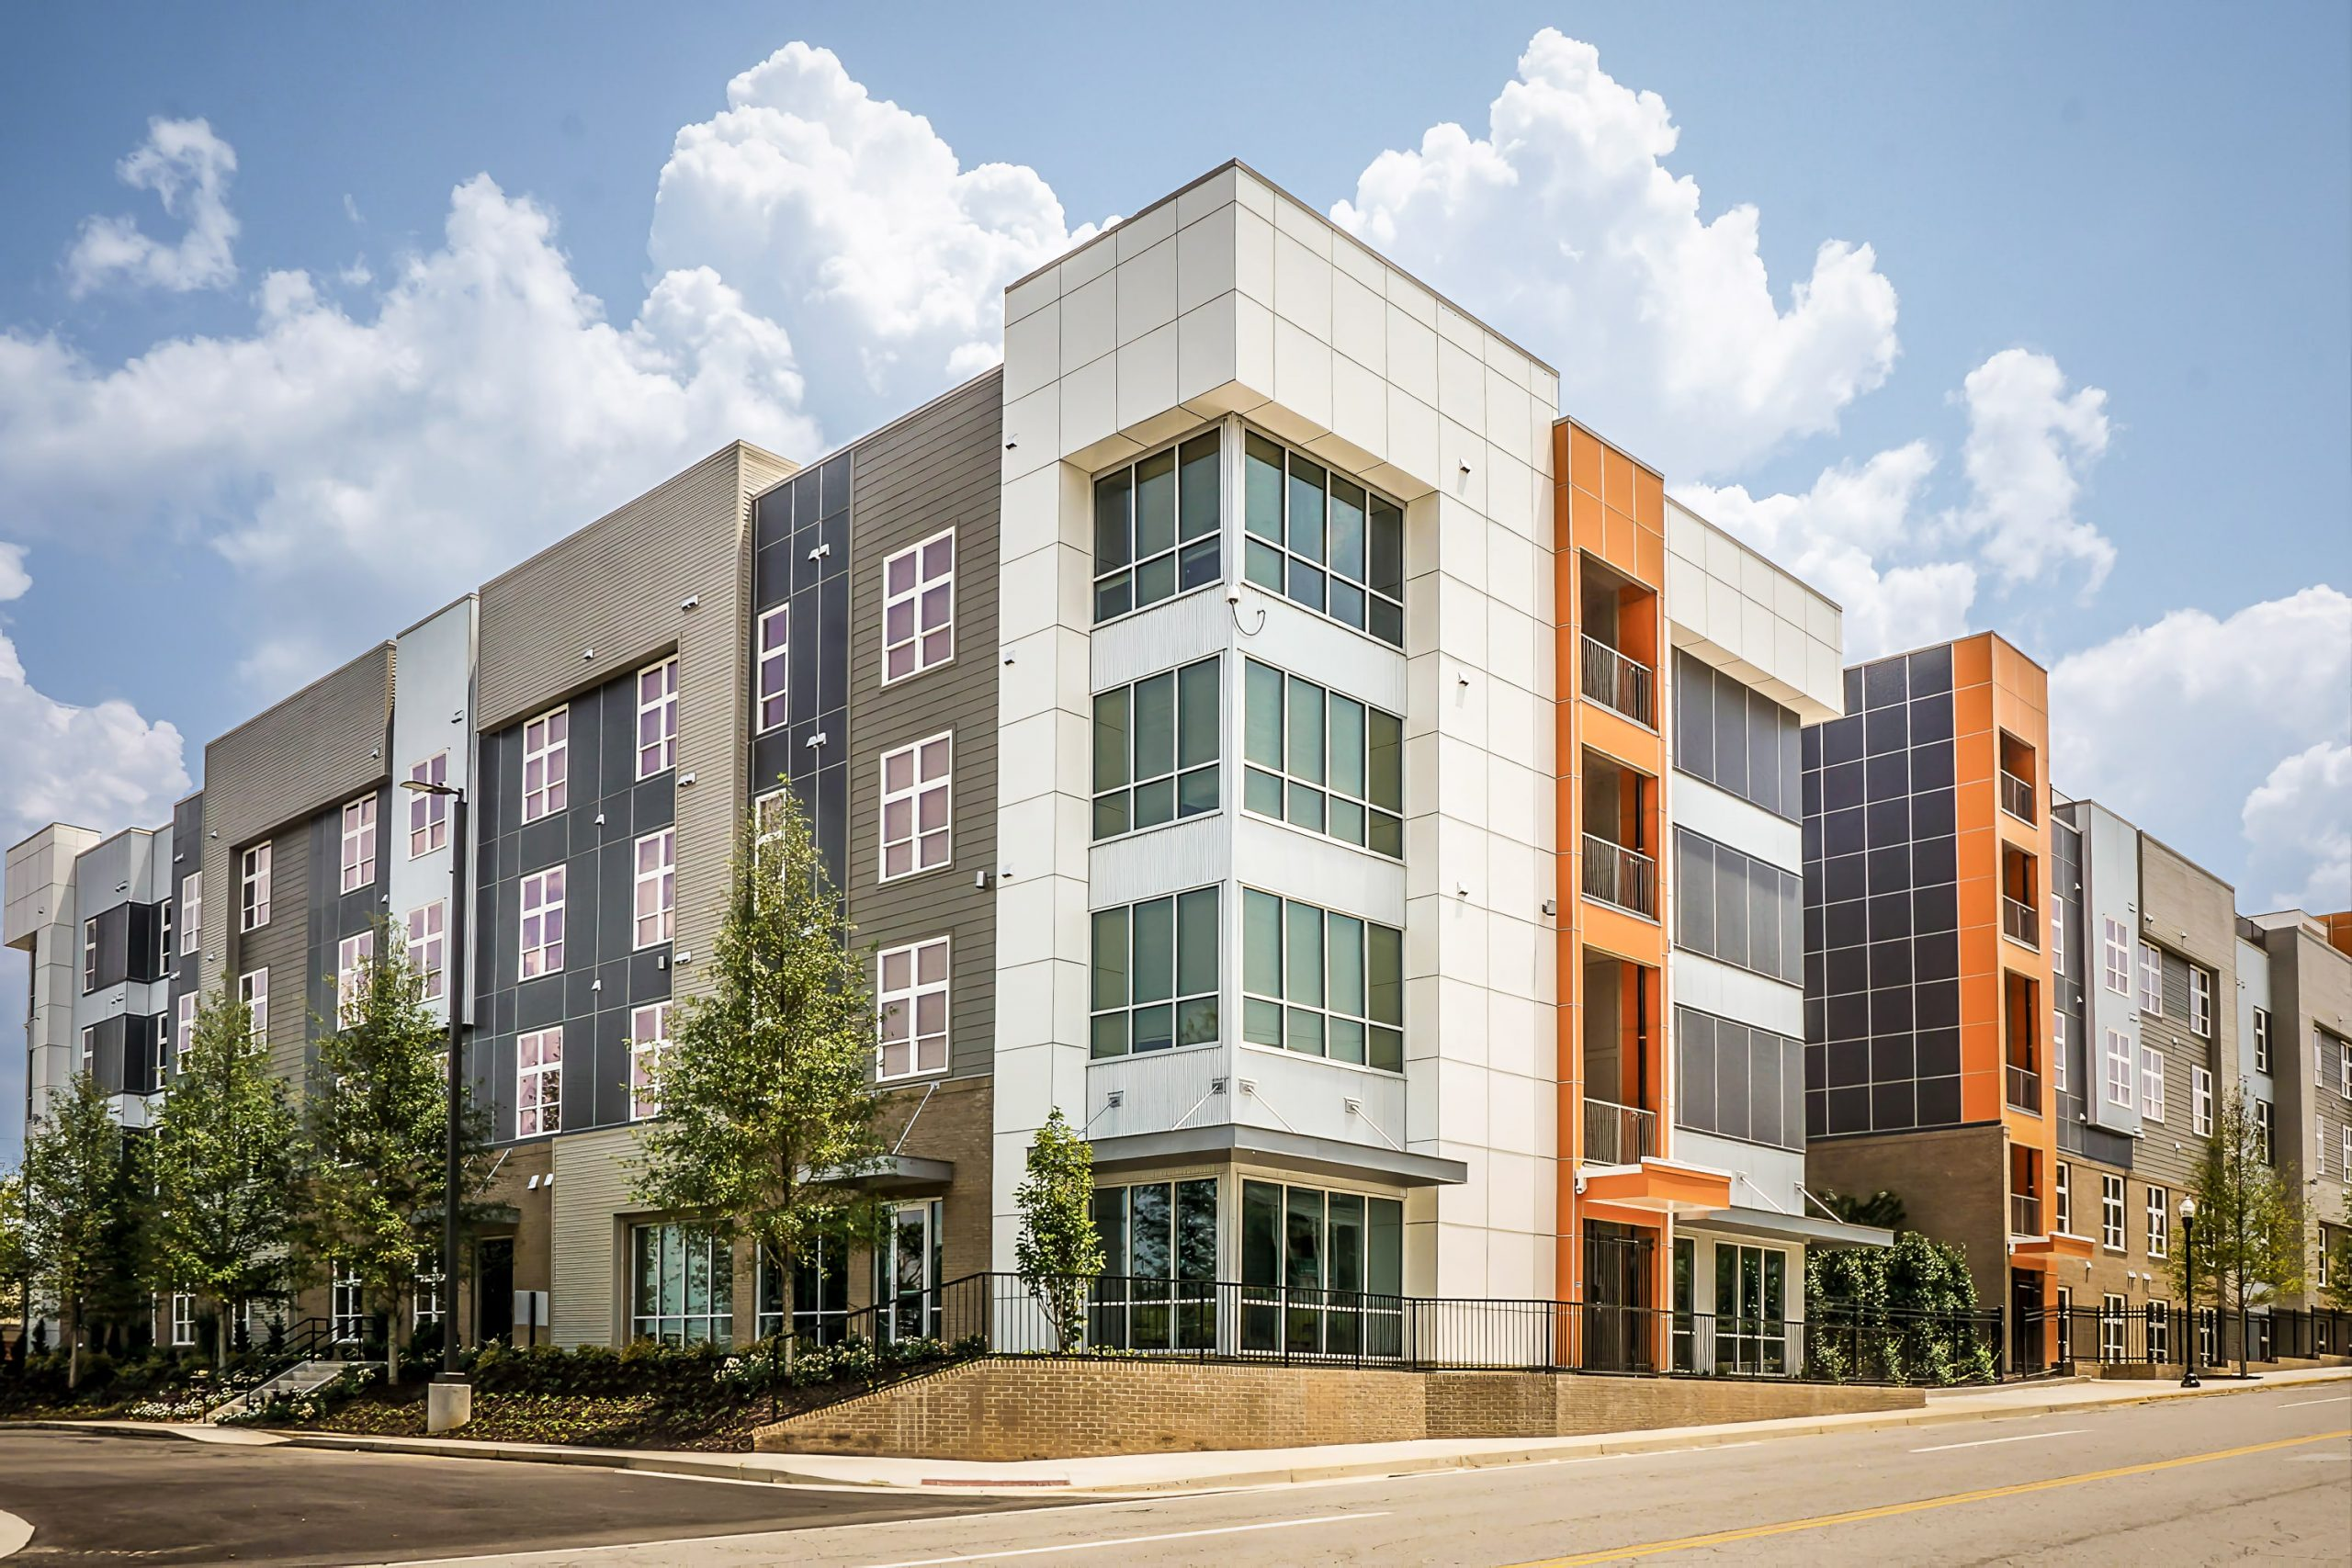 Awnex Featured Project - Architectural Gutter Canopies - Lofts at College Hills - Macon, Georgia